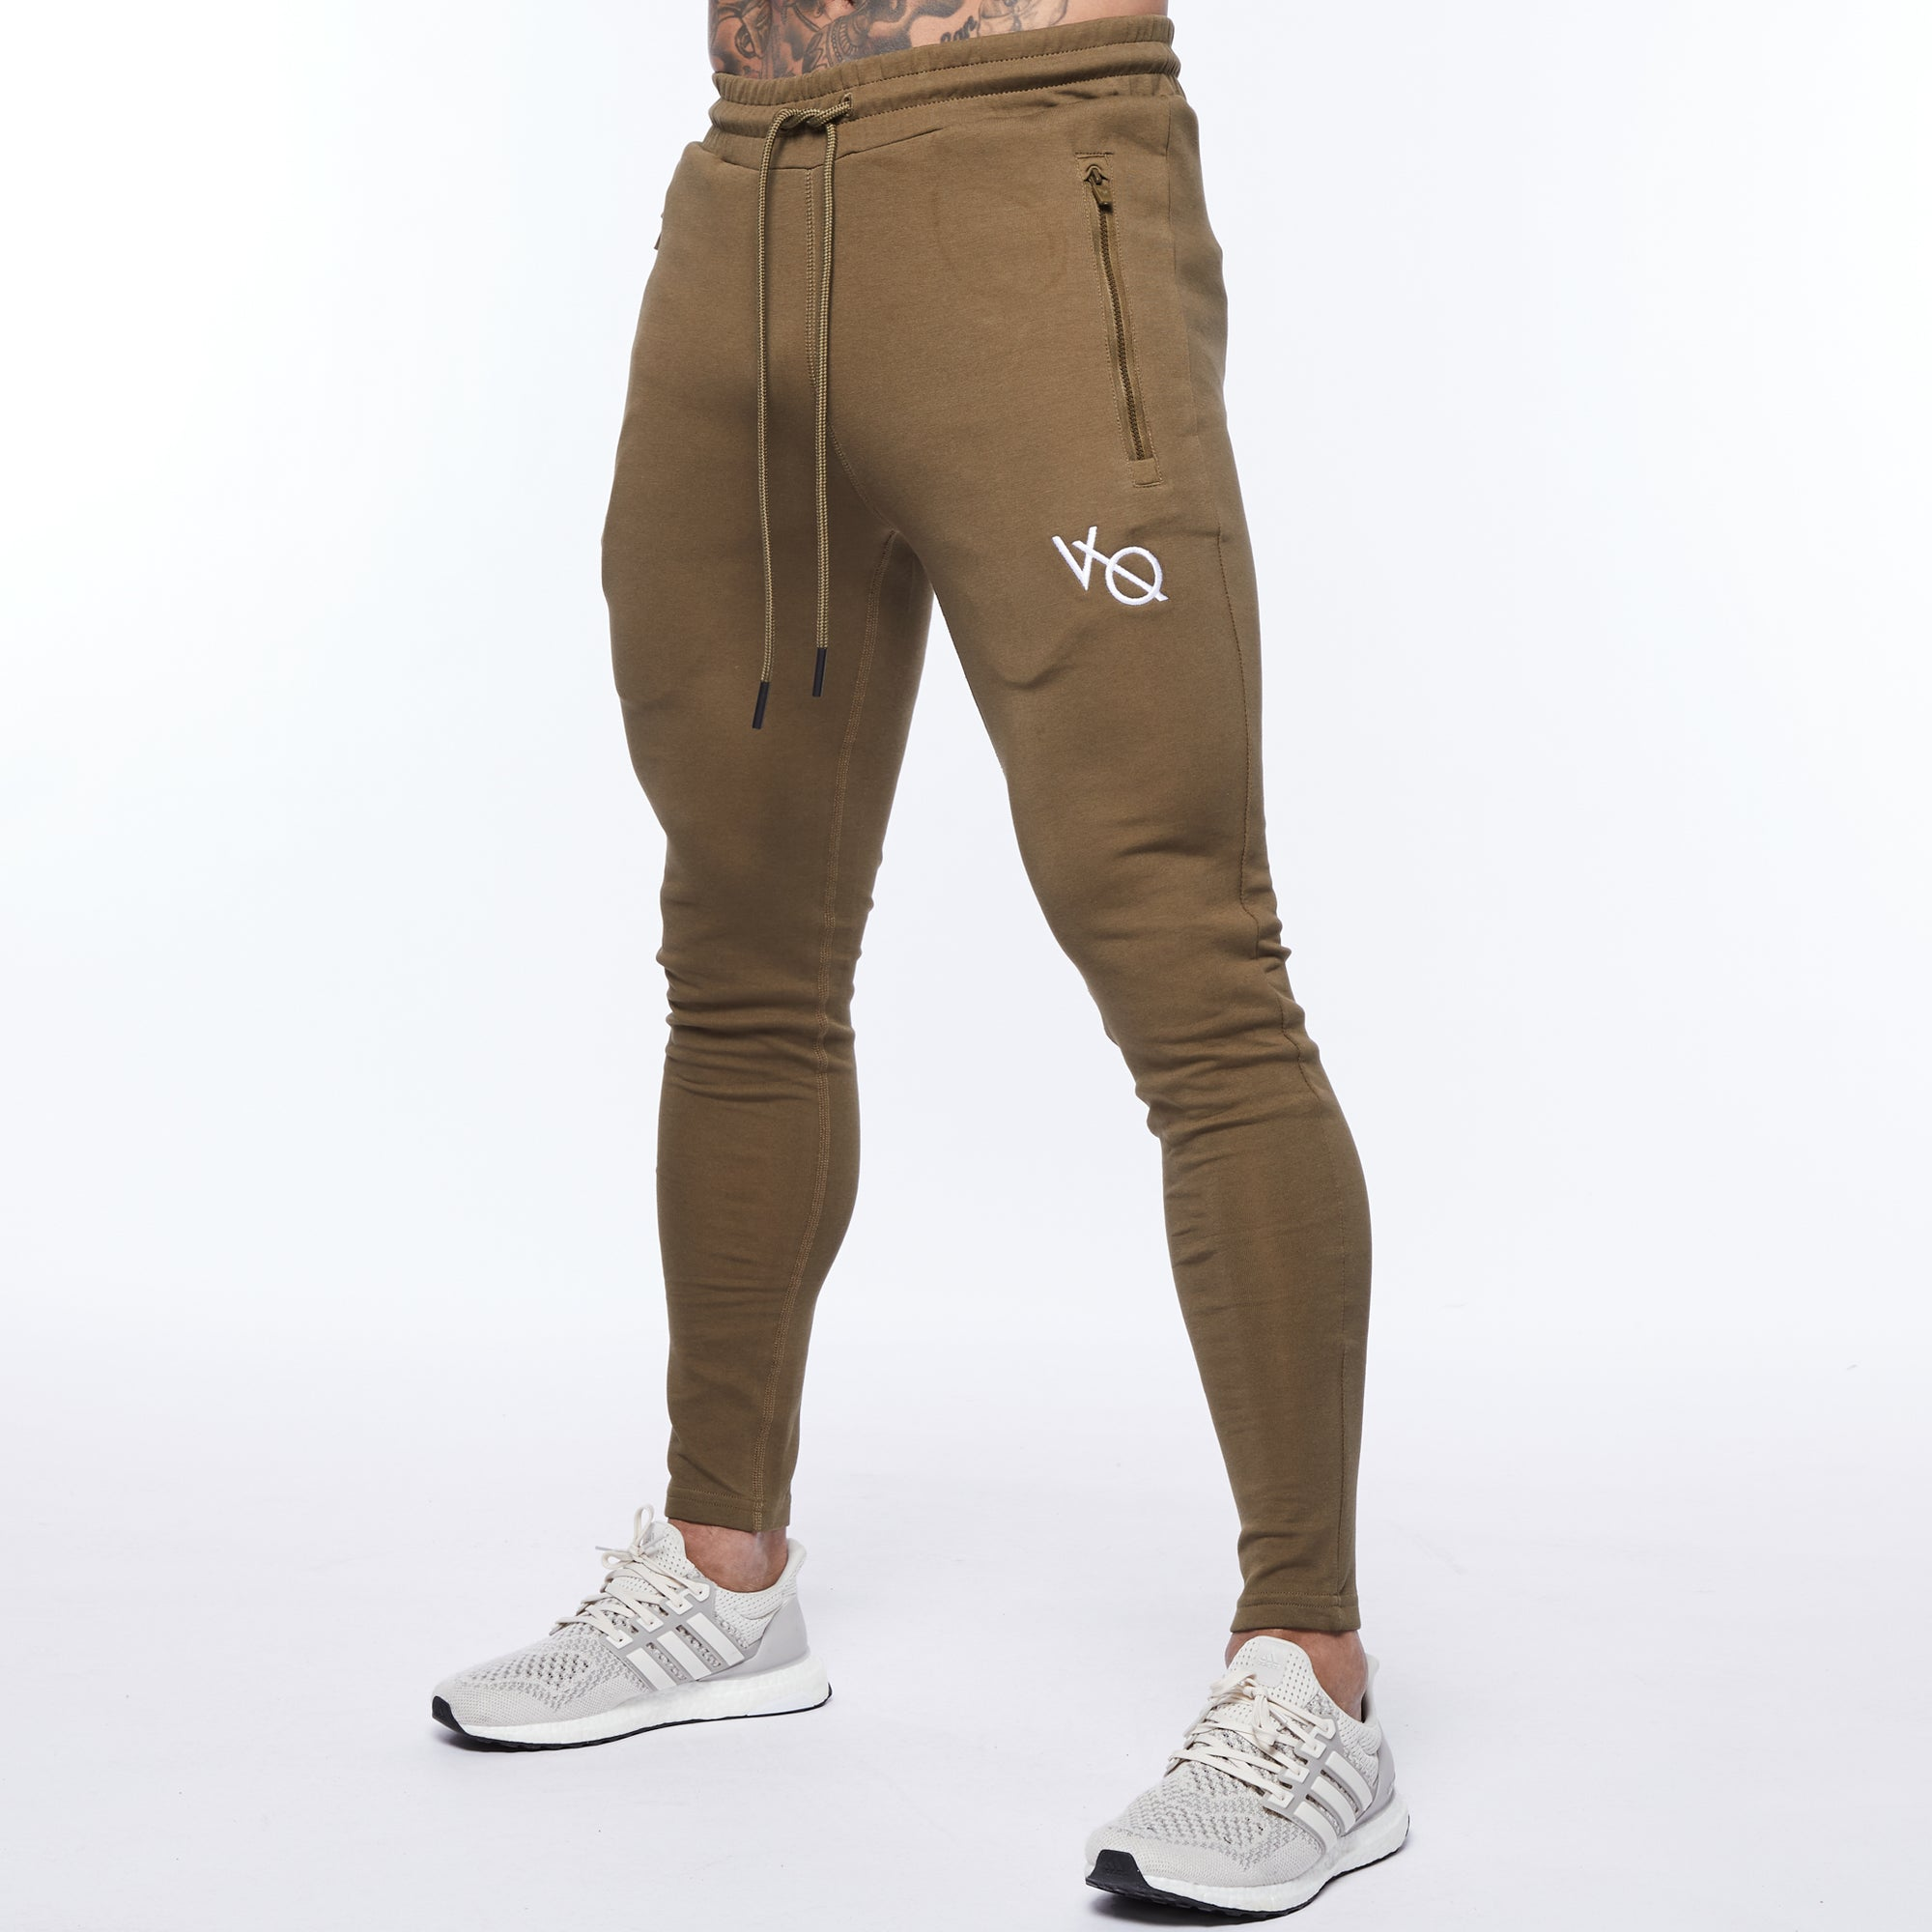 Vanquish Essential Olive Tapered Sweatpants